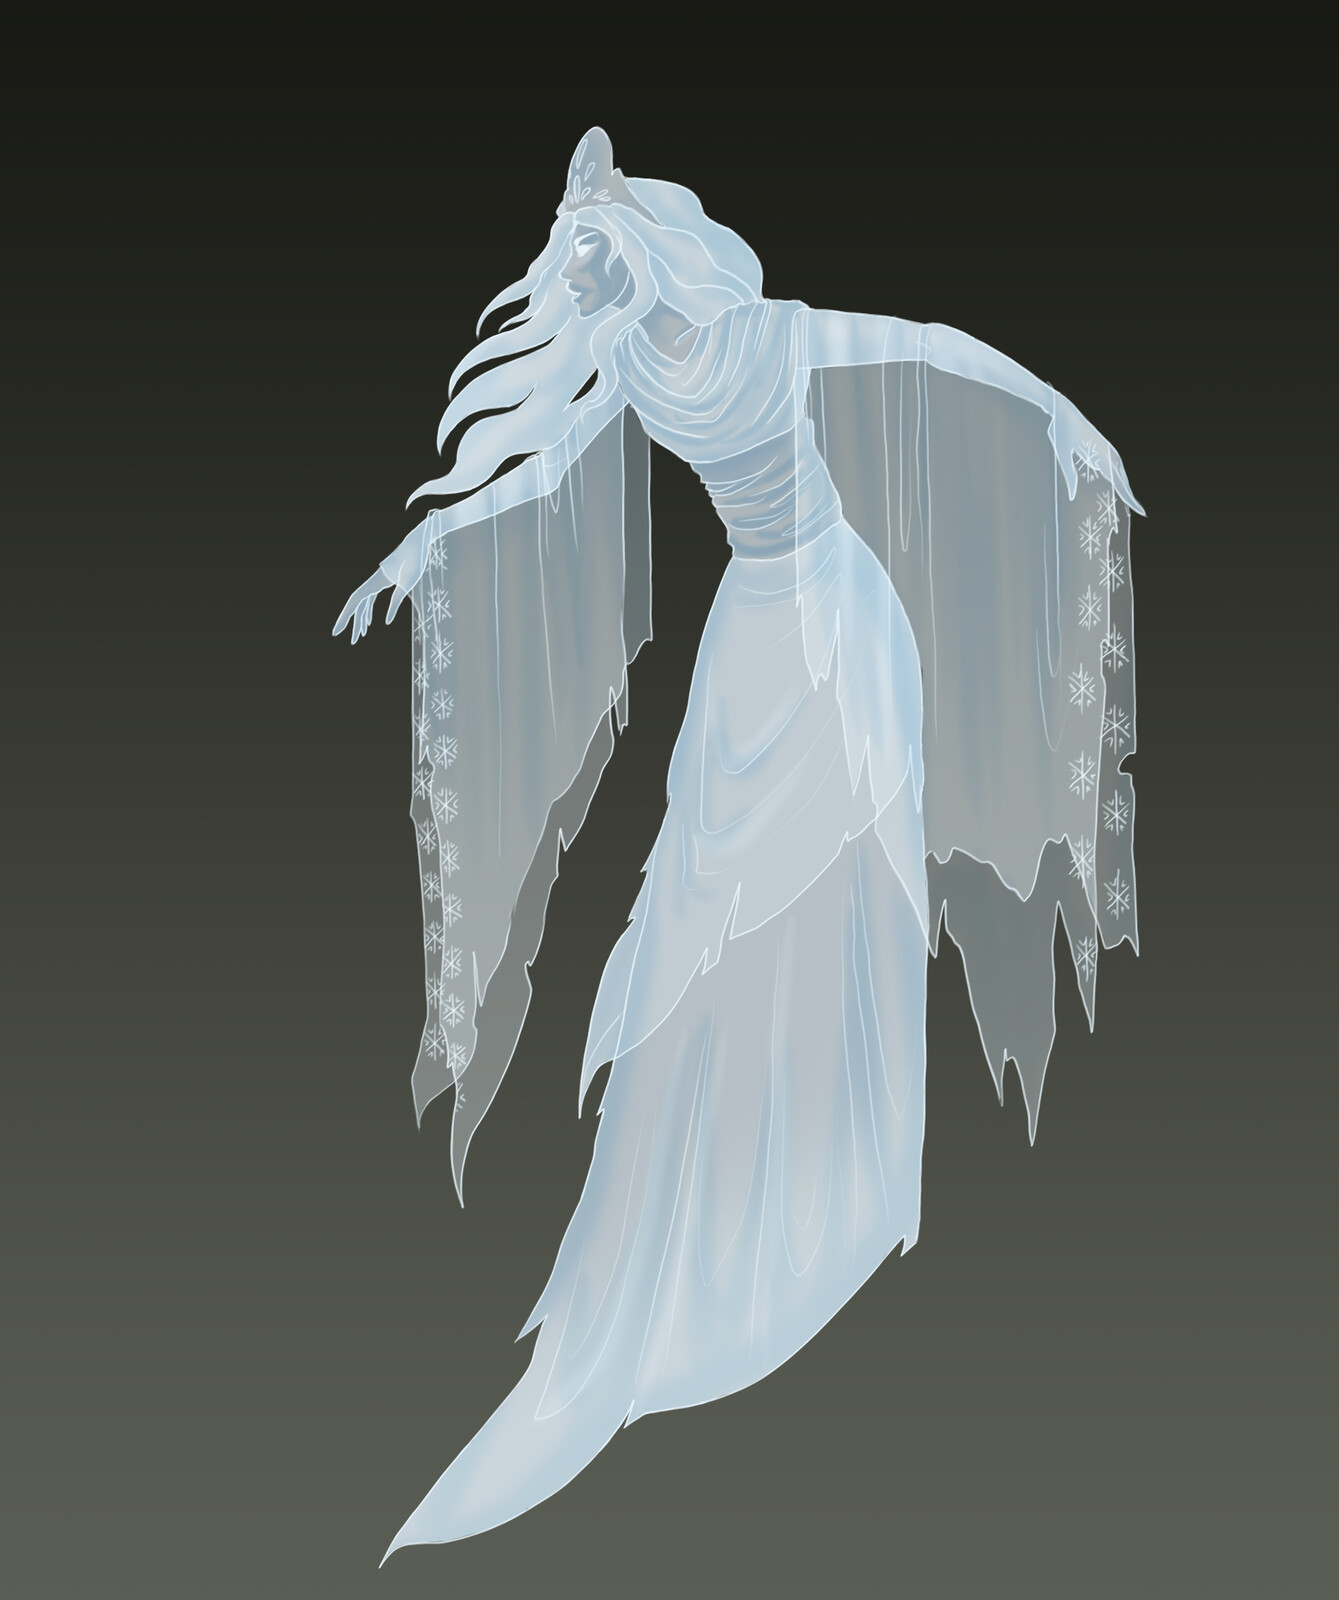 The White Woman, ghostly harbringer of death.